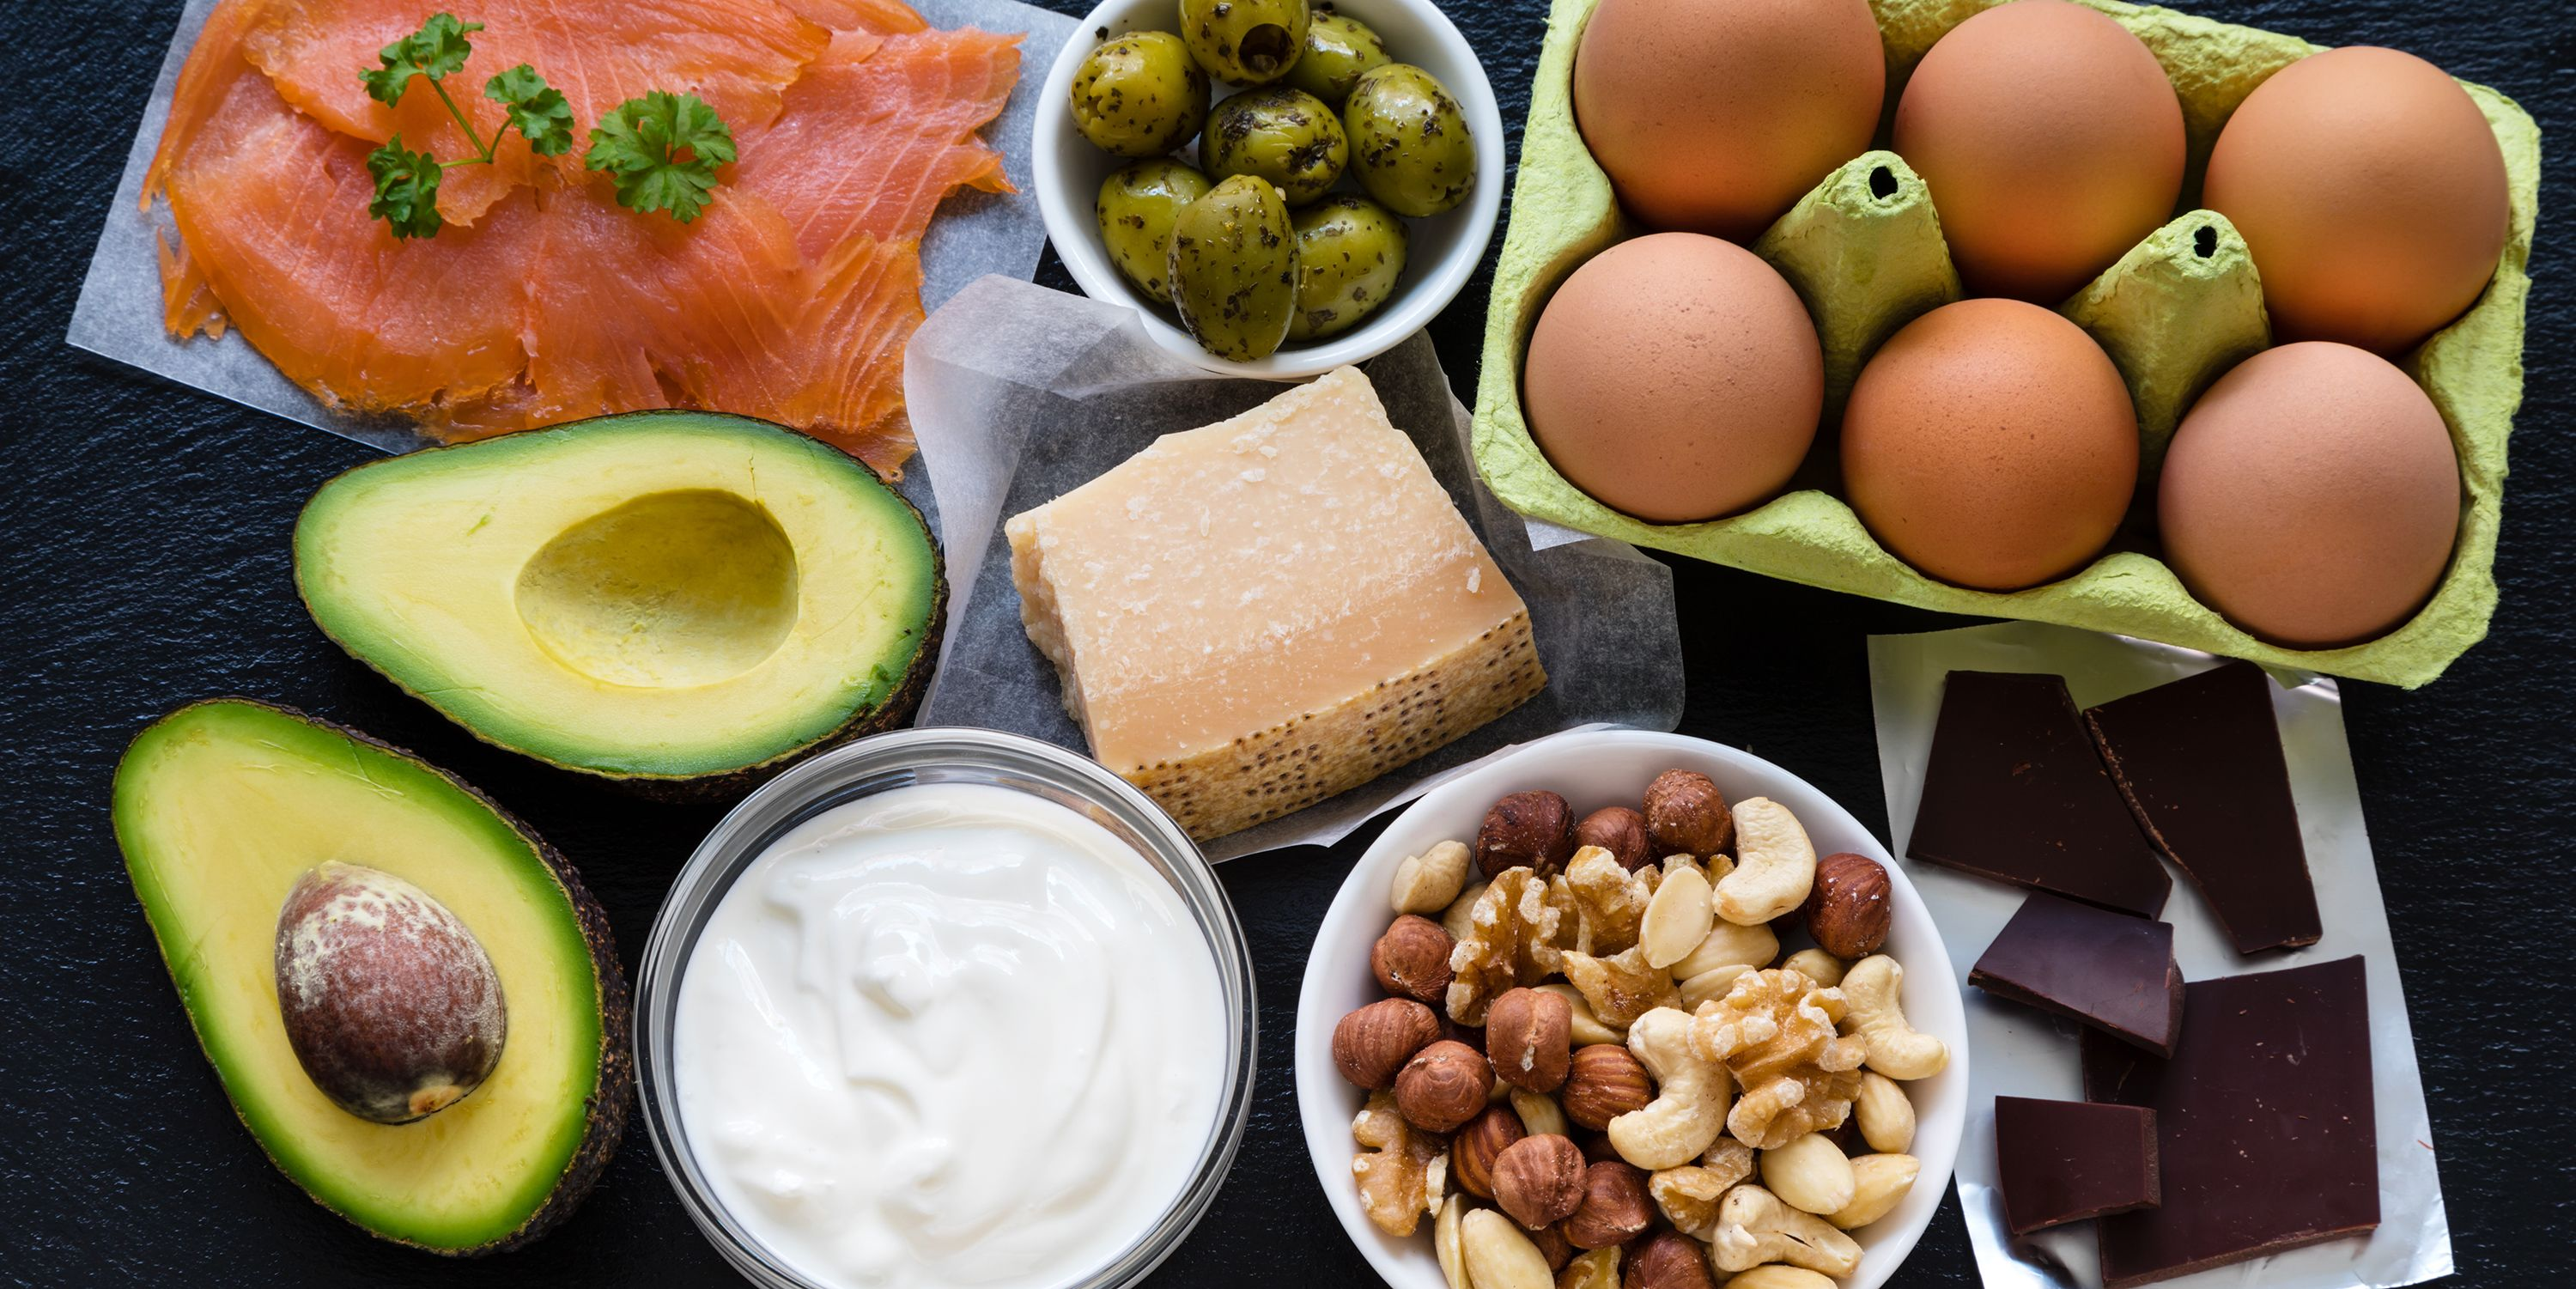 keto diet for belly fat